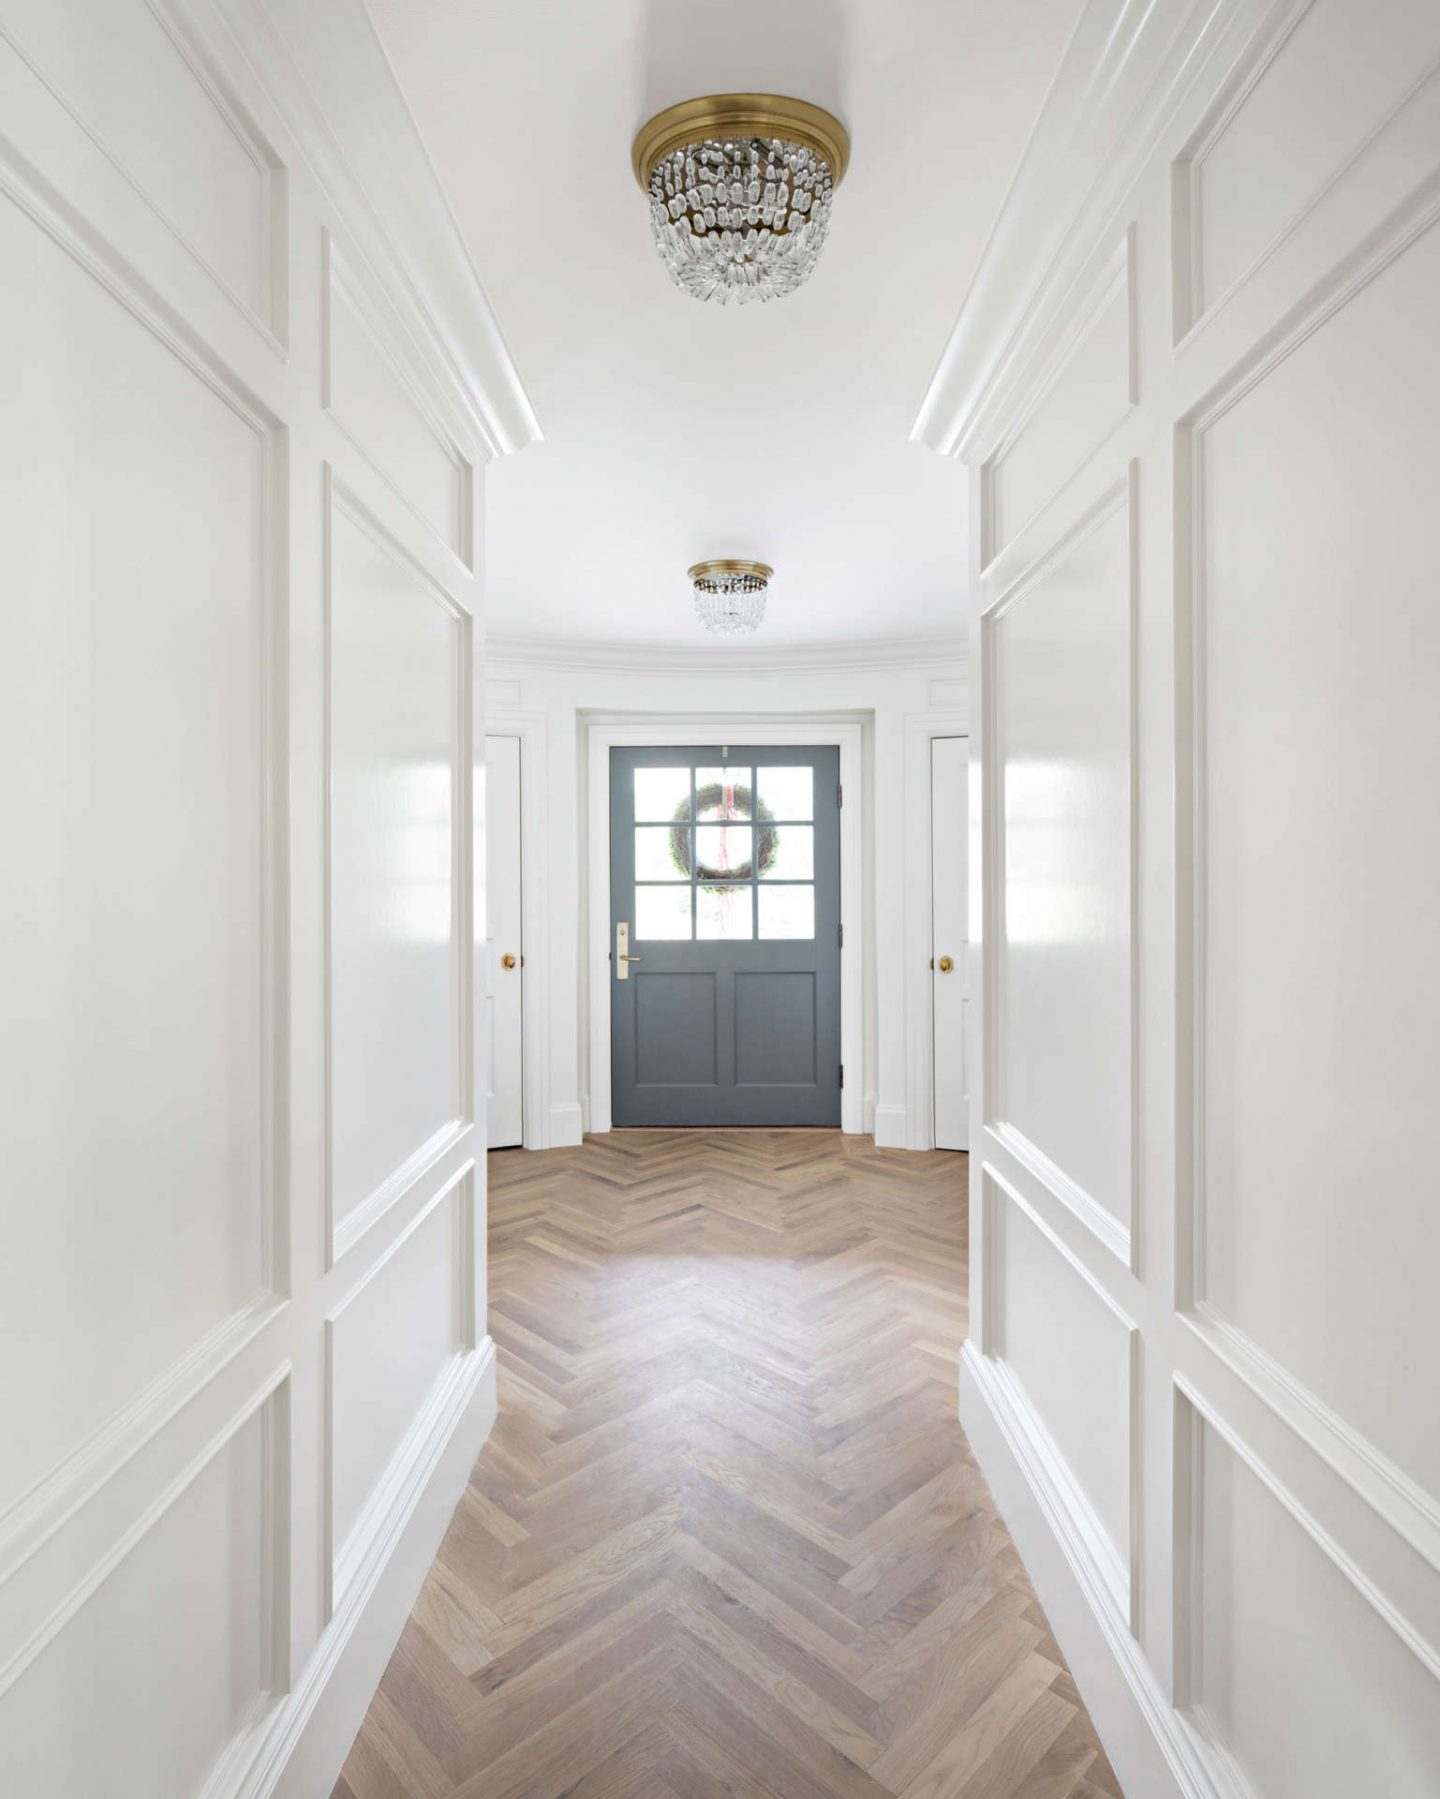 Herringbone flooring and beautiful paneled walls painted Benjamin Moore Simply White. The Fox Group.  Come see: Best White Paint Colors: 6 Favorites Designers Turn To in case you need paint color ideas. #benjaminmooresimplywhite #interiordesign #thefoxgroup